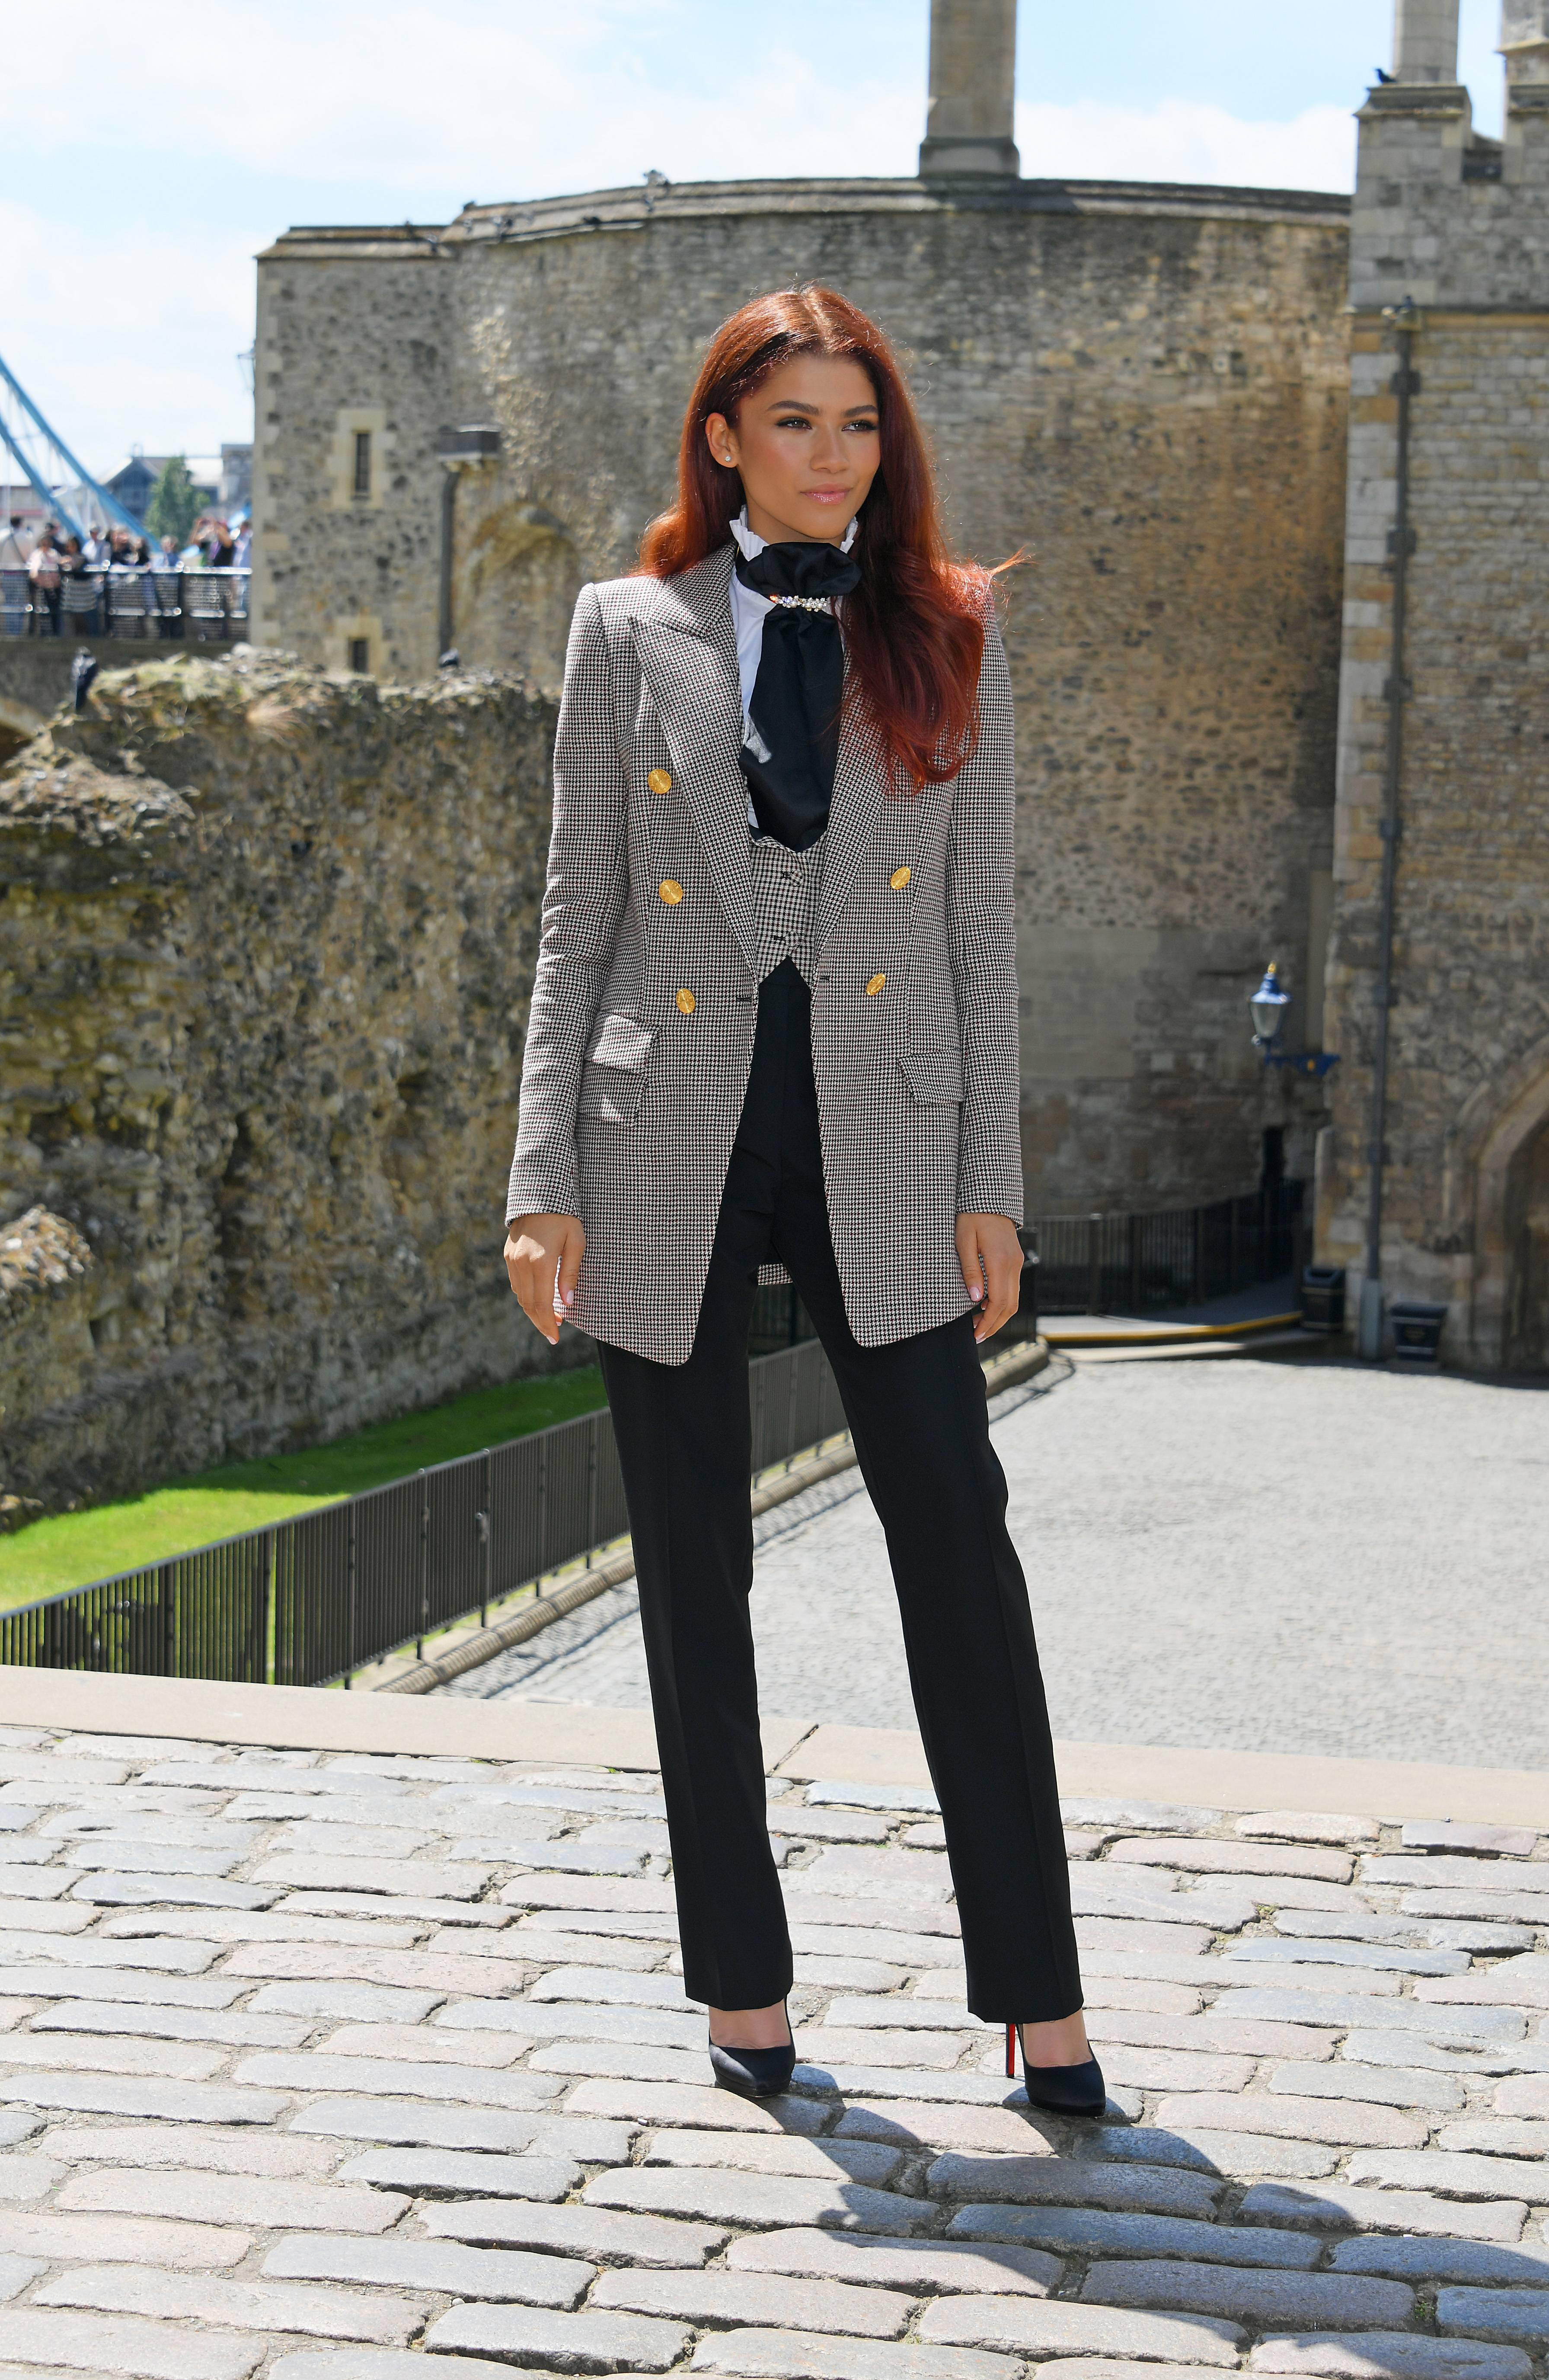 Mary Jane Does London - The London Bridge definitely came down to make way for Zendaya's slay! The leading lady of Spiderman: Far From Home debuted a brand new 'do to fit right in with her character. While we definitely loved her hair, we can't get over this London-inspired, FTW Alexandre Vauthier 'fit of a houndstooth blazer and vest, black pencil trousers paired with Louboutin pumps that she was rocking! (Photo: David M. Benett/Dave Benett/WireImage)